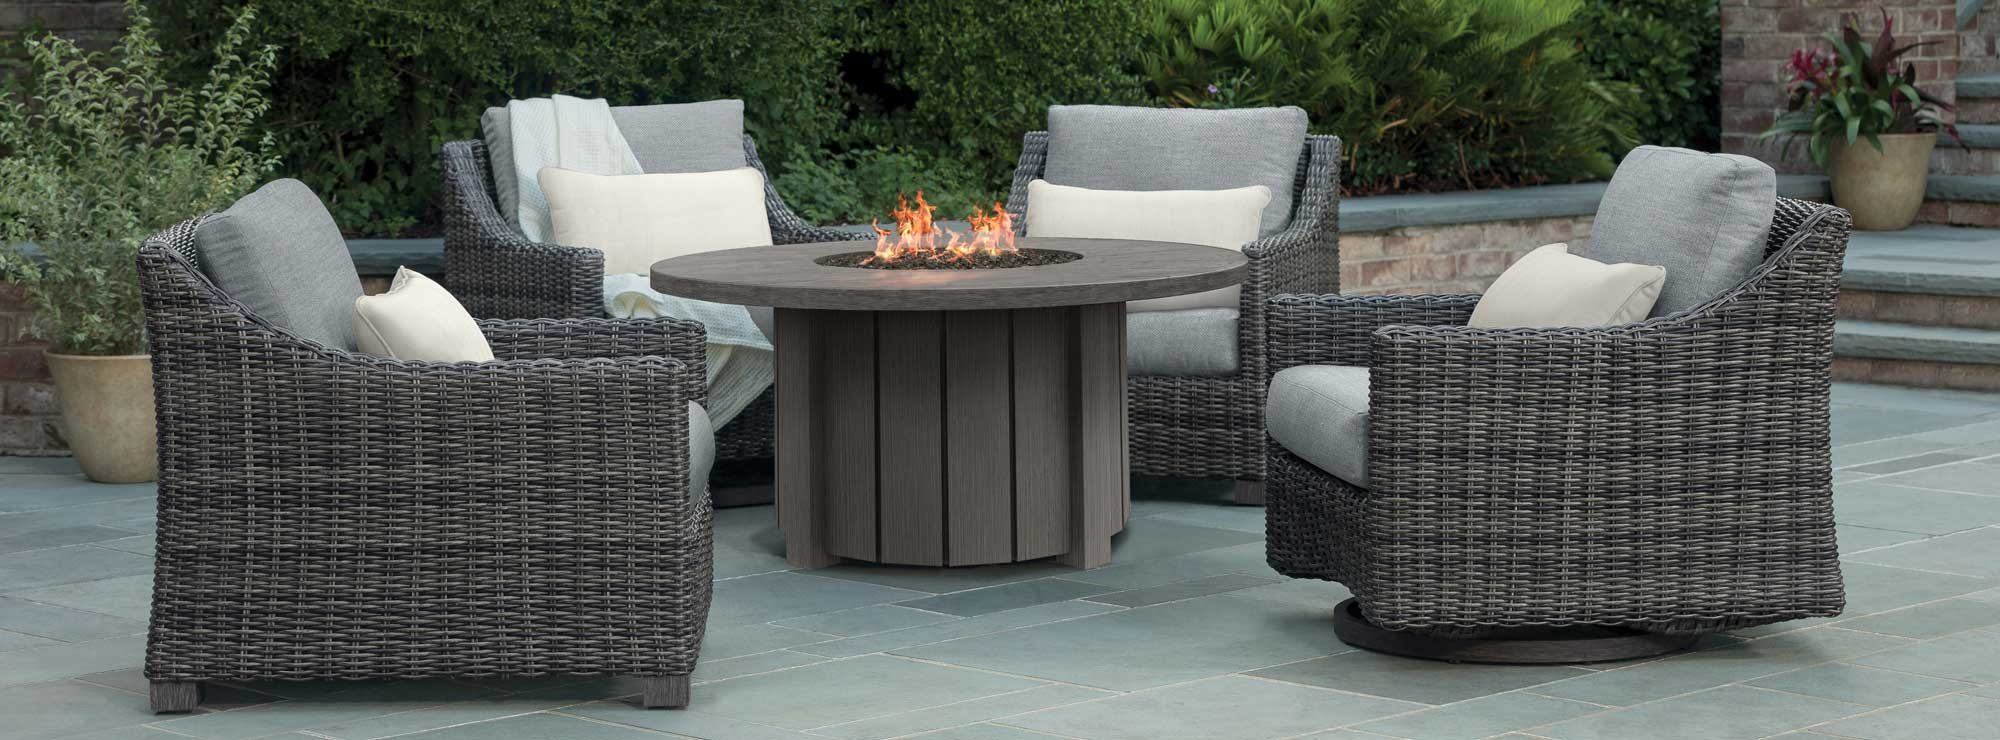 Avallon Outdoor Fire Chat Set by Ebel Banner